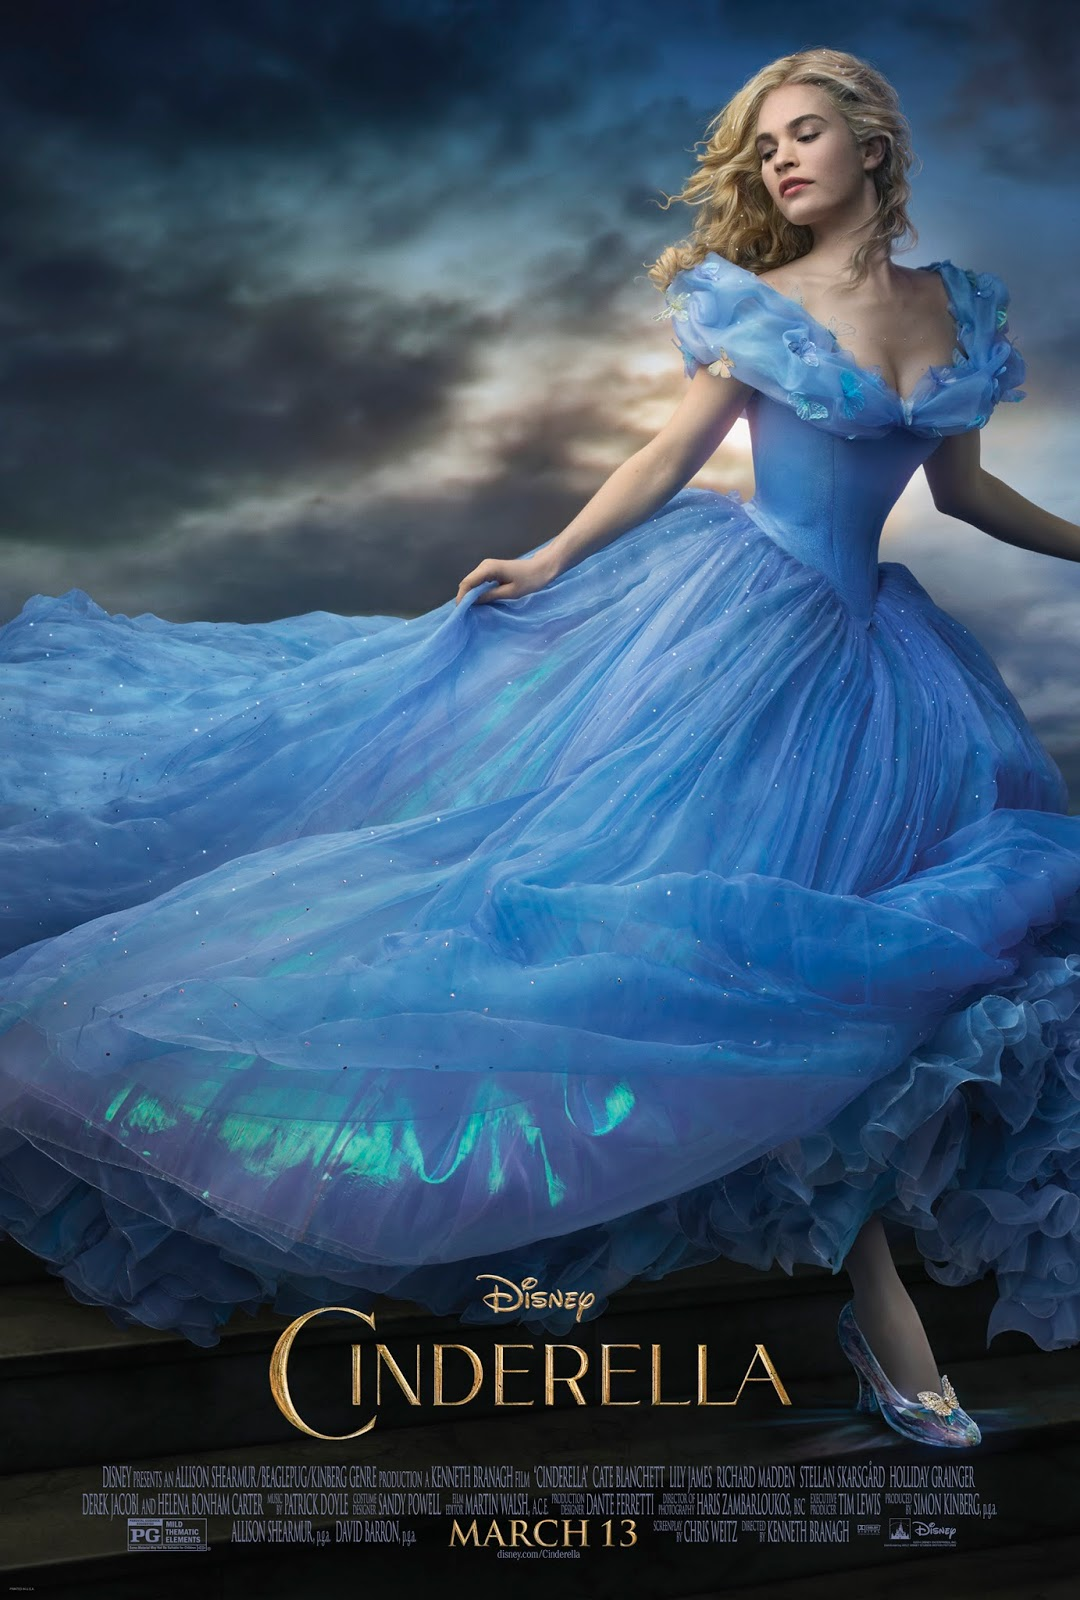 CINDERELLA live-action feature film inspired by the classic fairy tale.